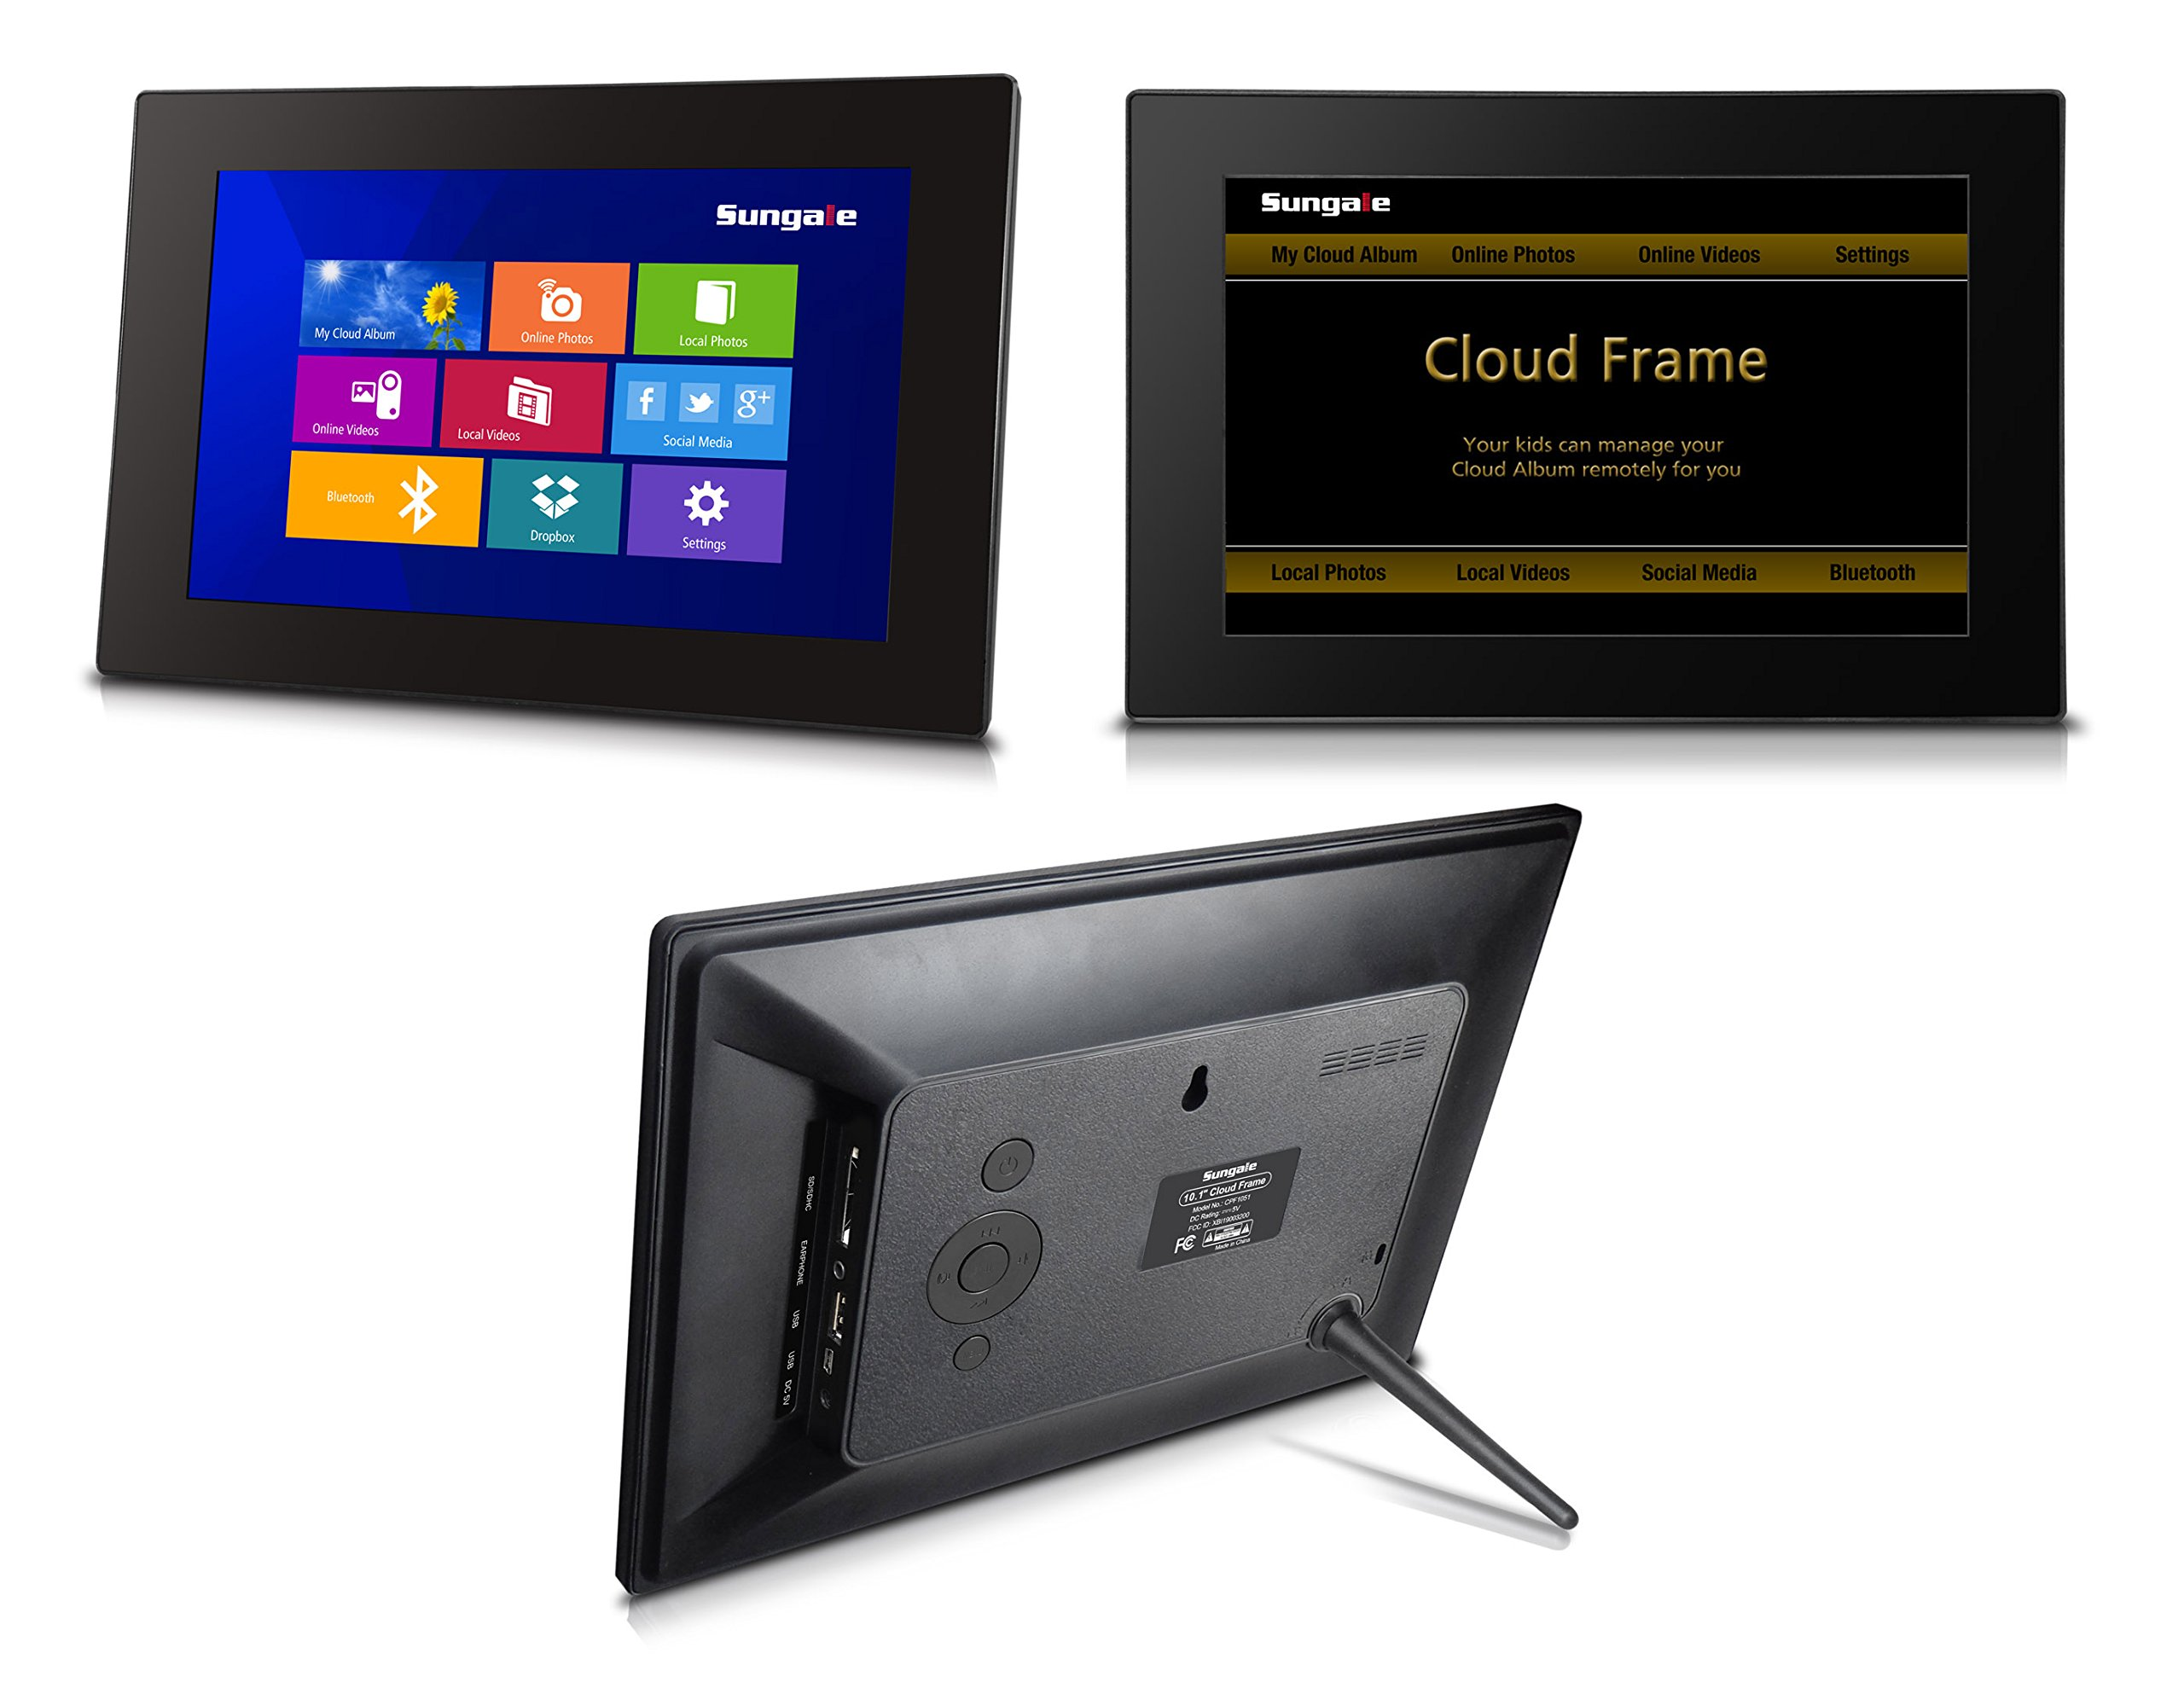 10'' Ultra HD Display Wi-Fi Cloud Frame, Touchscreen, 20GB Free Cloud Storage APP Send Real-time Photos, Social Media, Streaming Music and Movie Playback